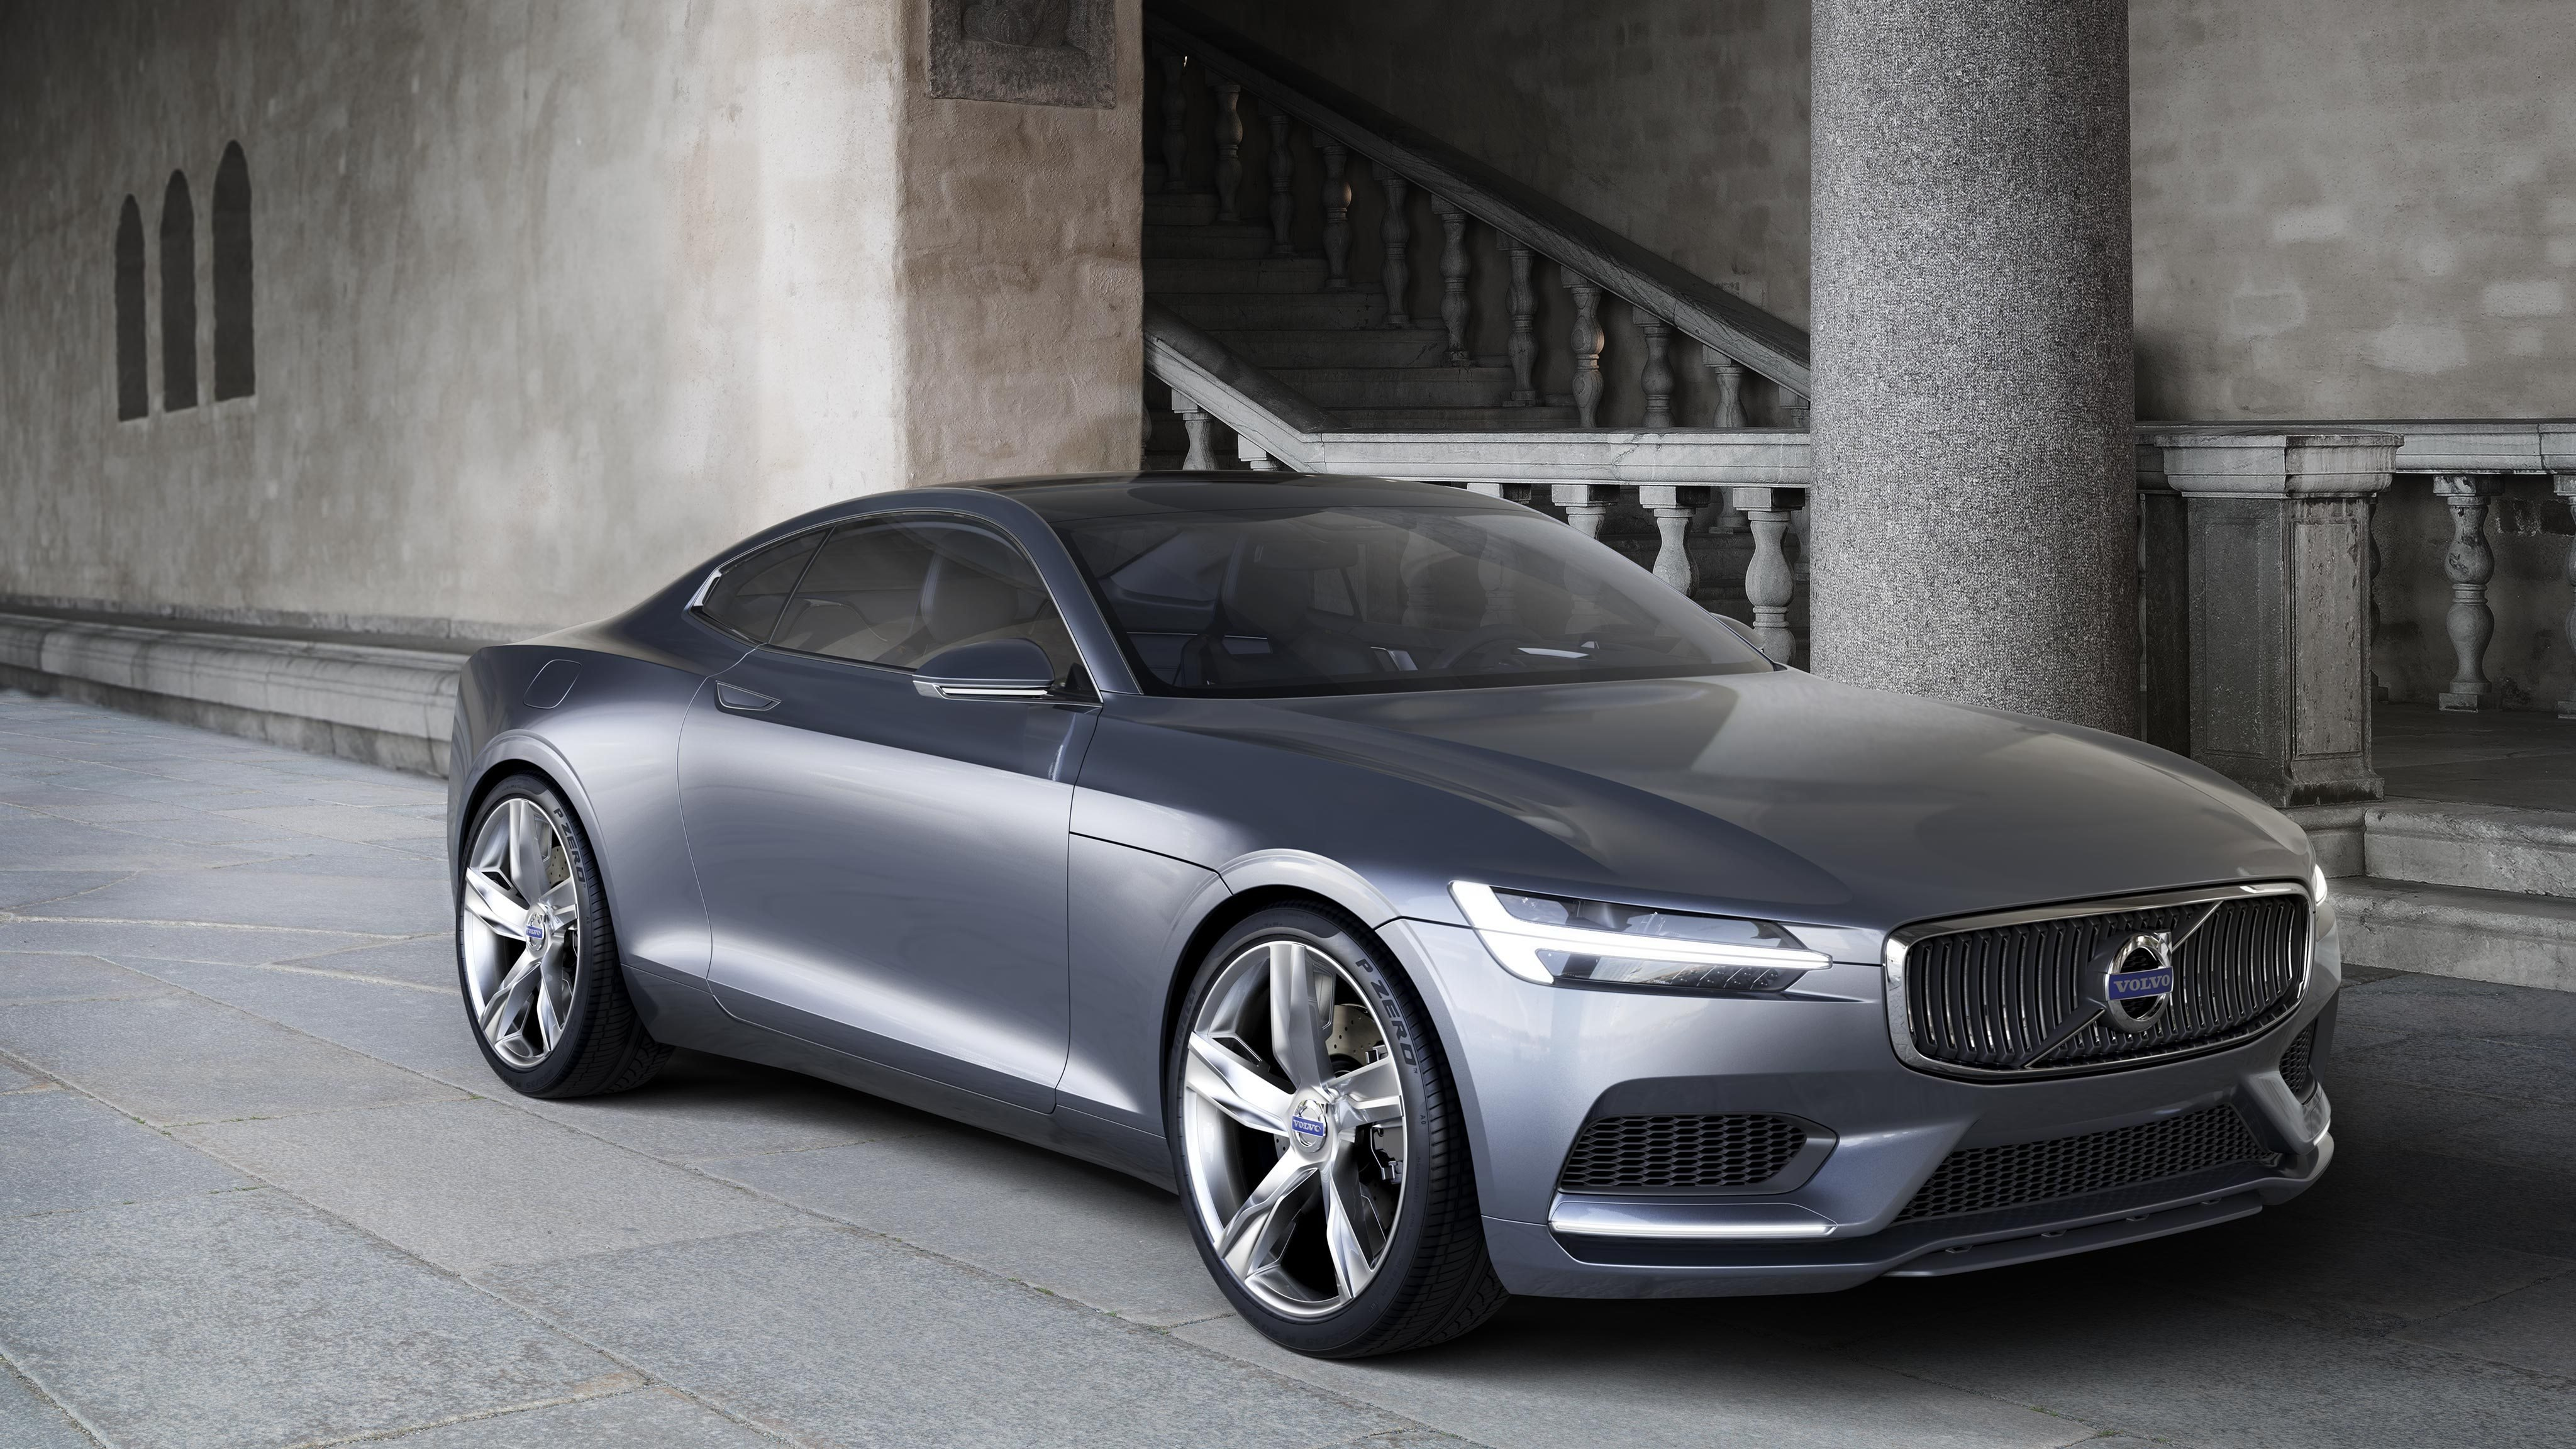 Latest Concept Coupe Volvo Cars Free Download